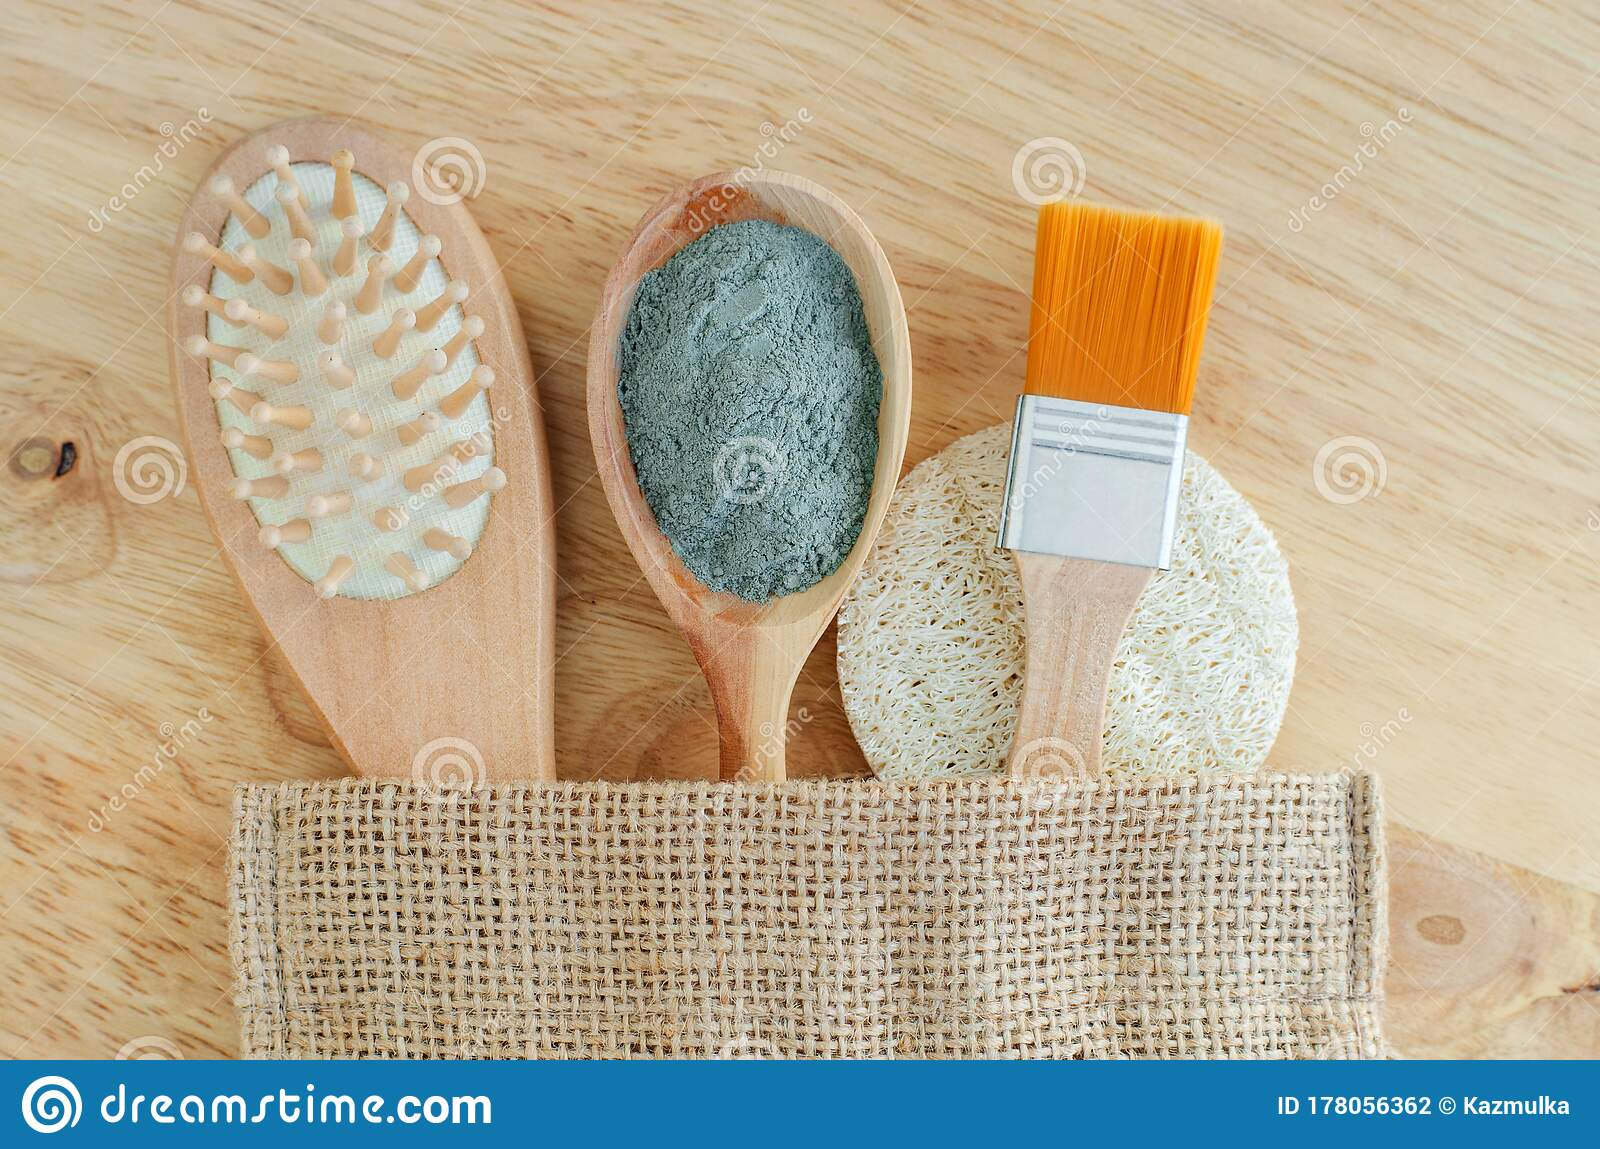 Wooden Hairbrush, Spoon With Blue Bentonite Clay Powder, Make-up Brush And Loofah Sponge. Natural Beauty Treatment Stock Photo